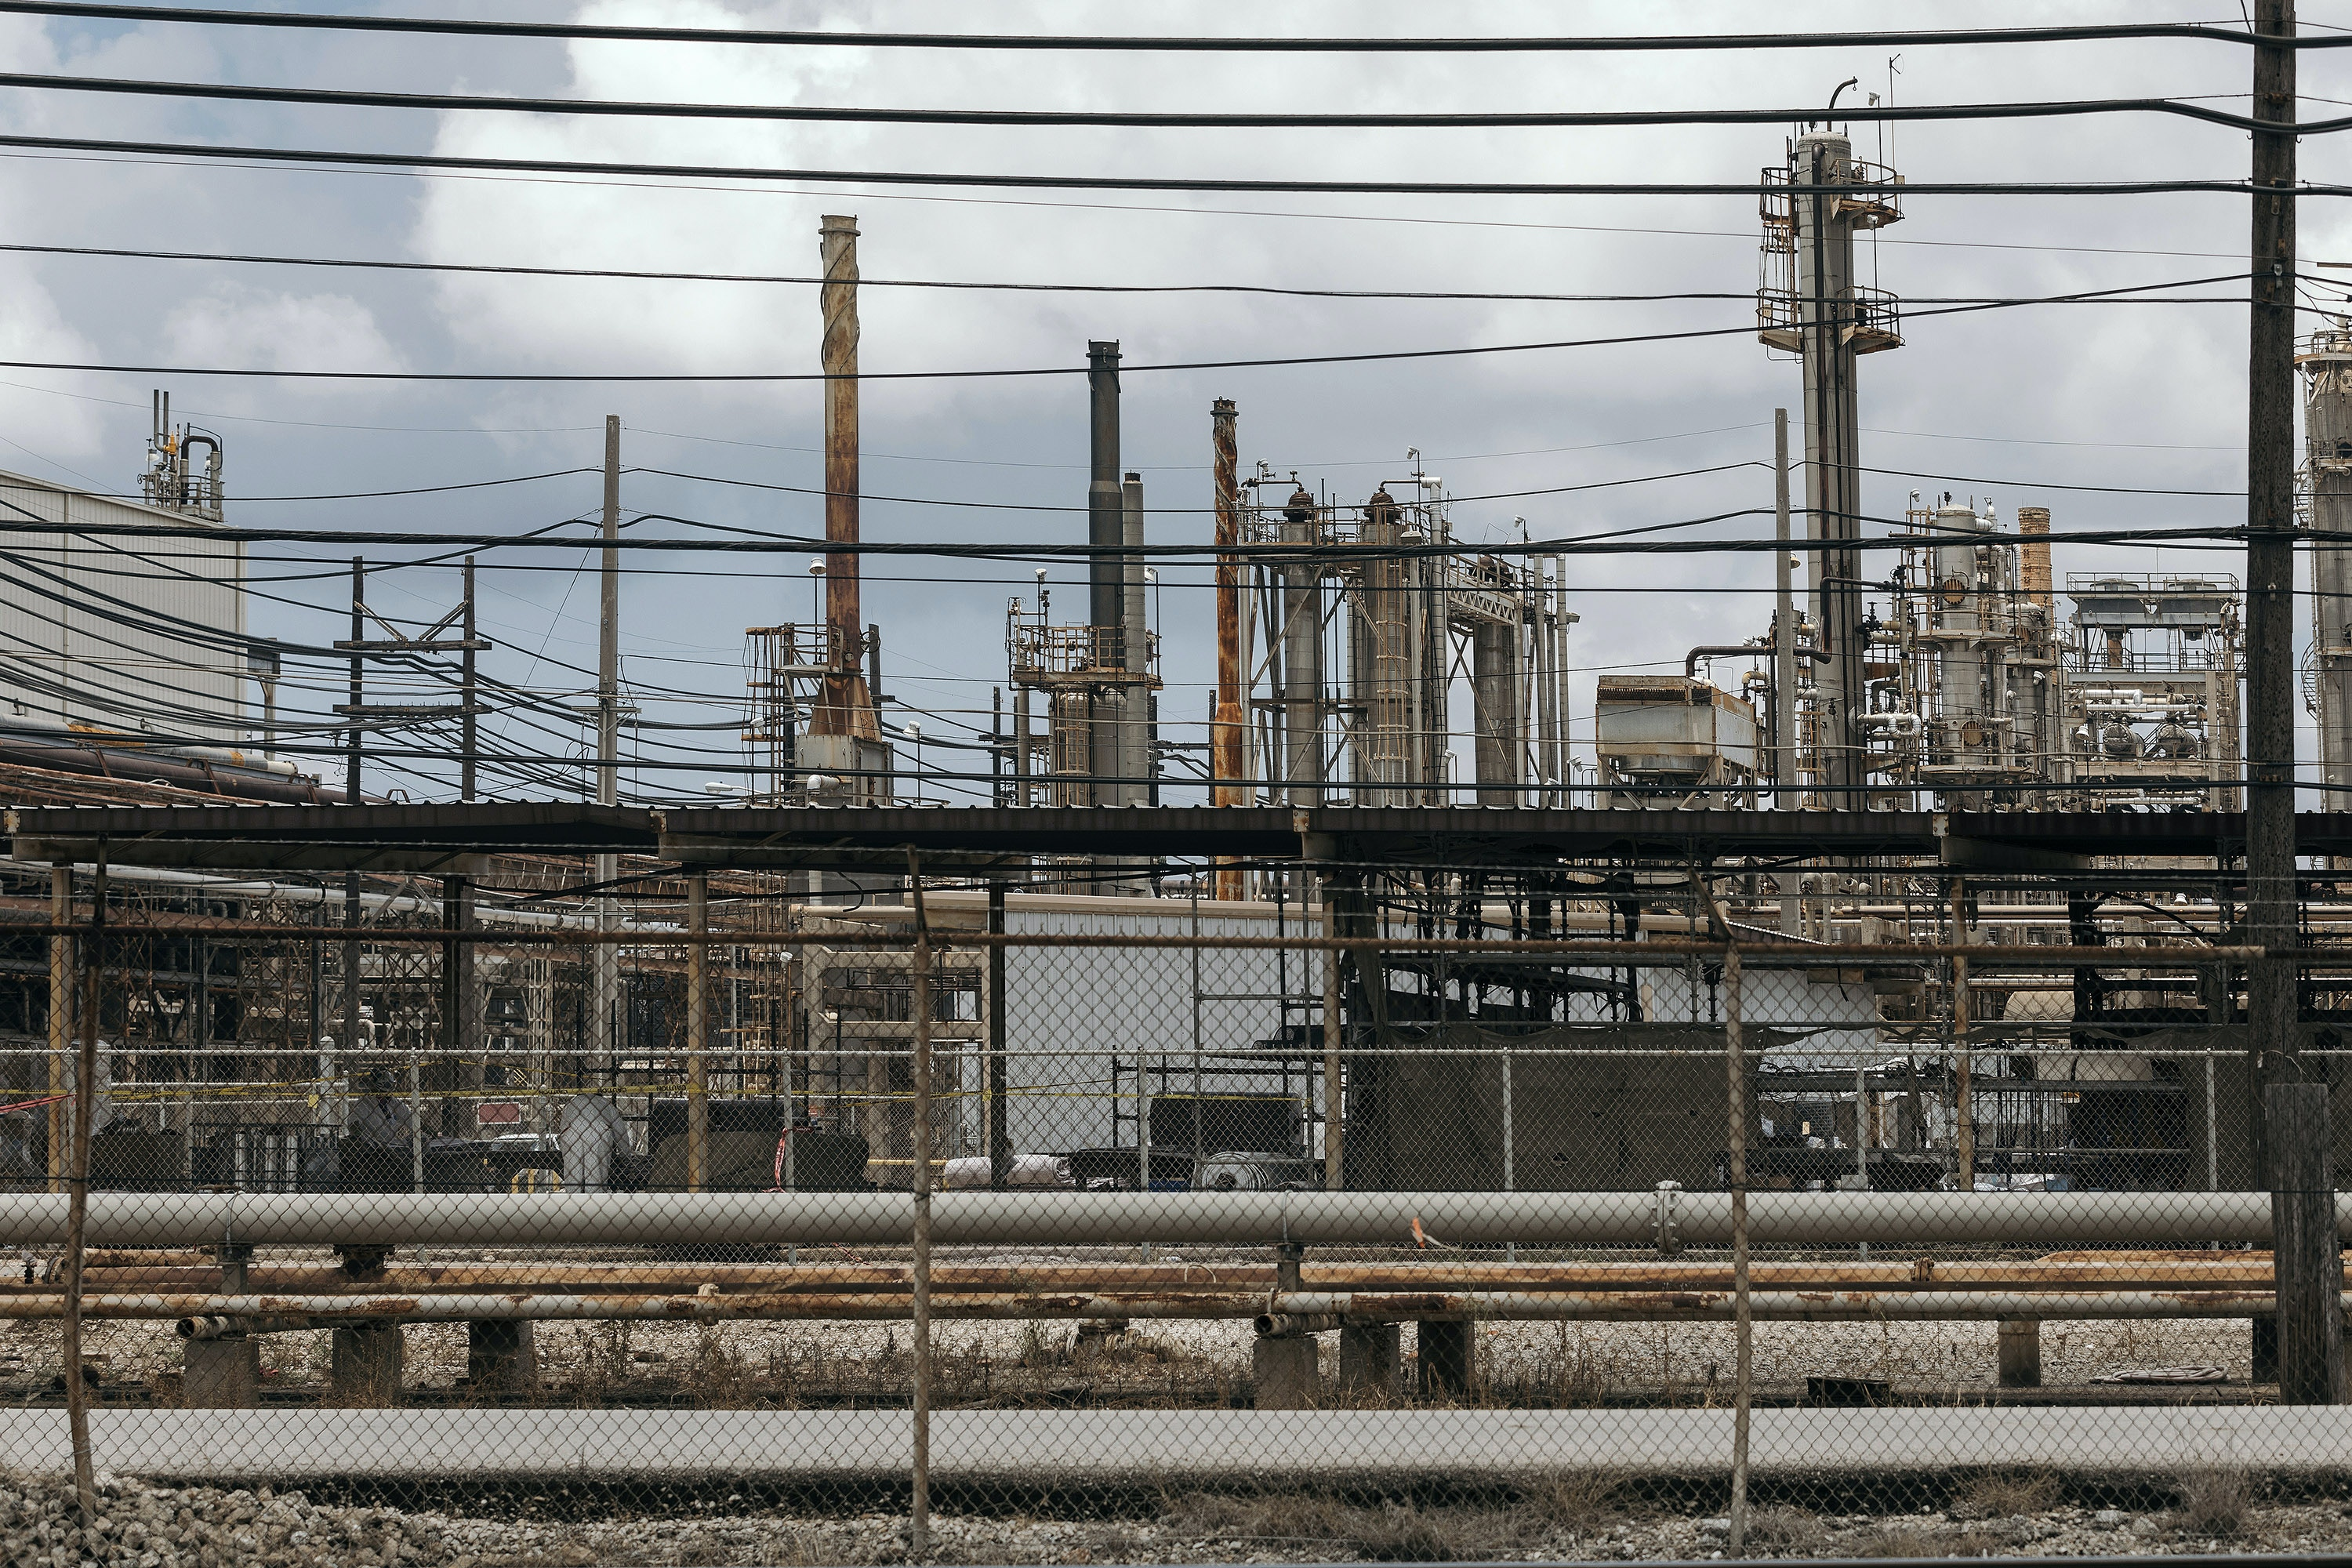 The Exxon refinery as seen from Gulf States Road, Tuesday, June 6th, 2017 in Beaumont, Texas.Todd Spoth for The Intercept